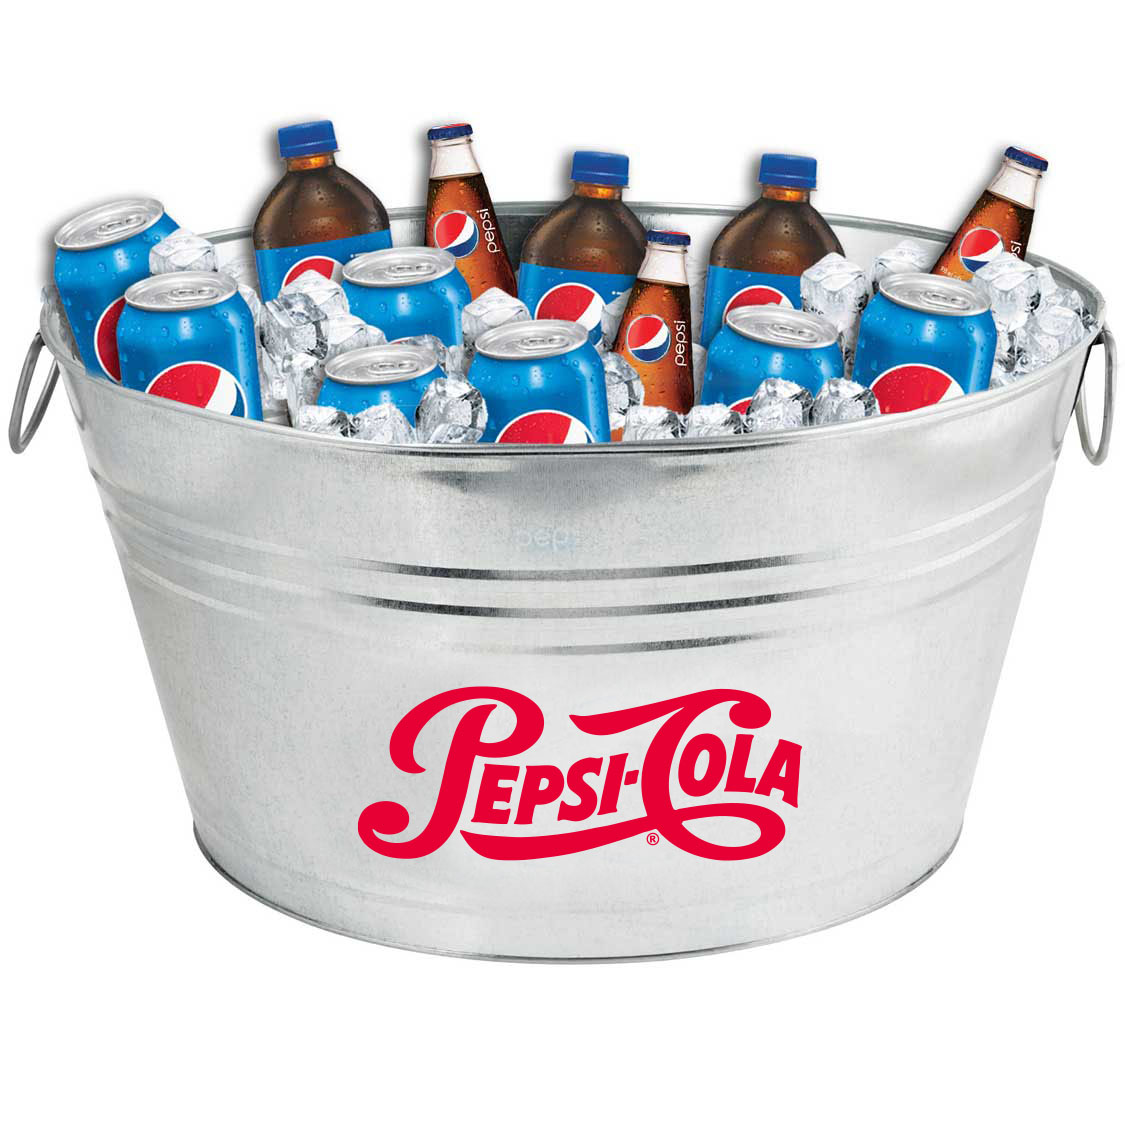 Oval Galvanized Metal Tub - Pepsi Cola